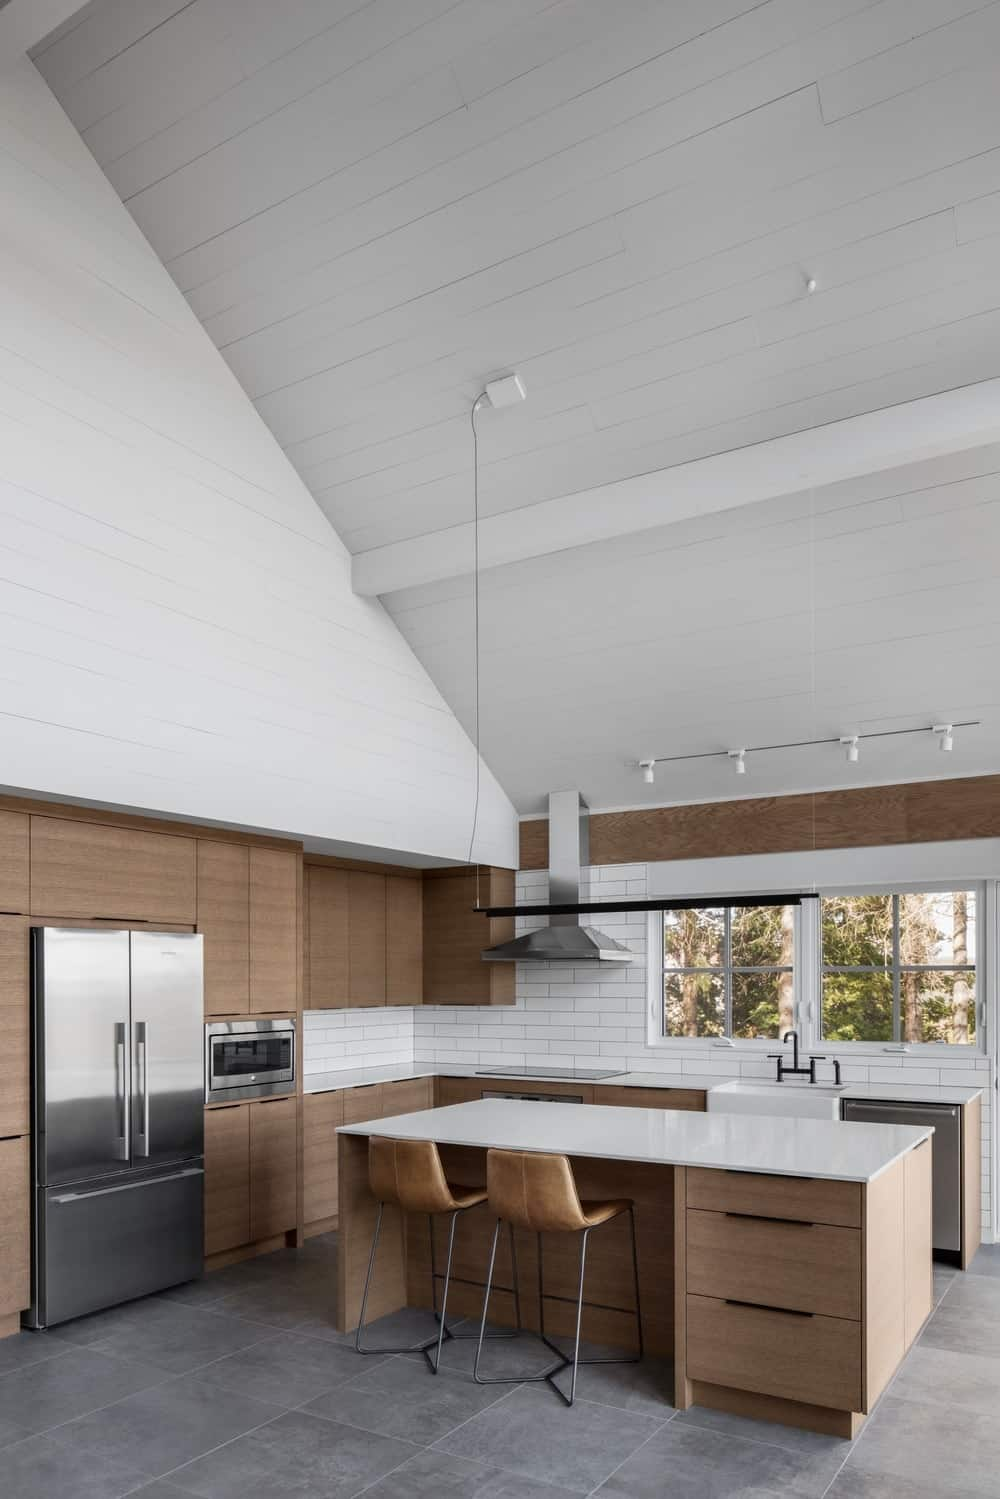 The modern three-door fridge and oven are both embedded into the large wooden structure connected to the L-shaped peninsula that has a white countertop that emphasizes the stainless steel dishwasher beside the sink area.